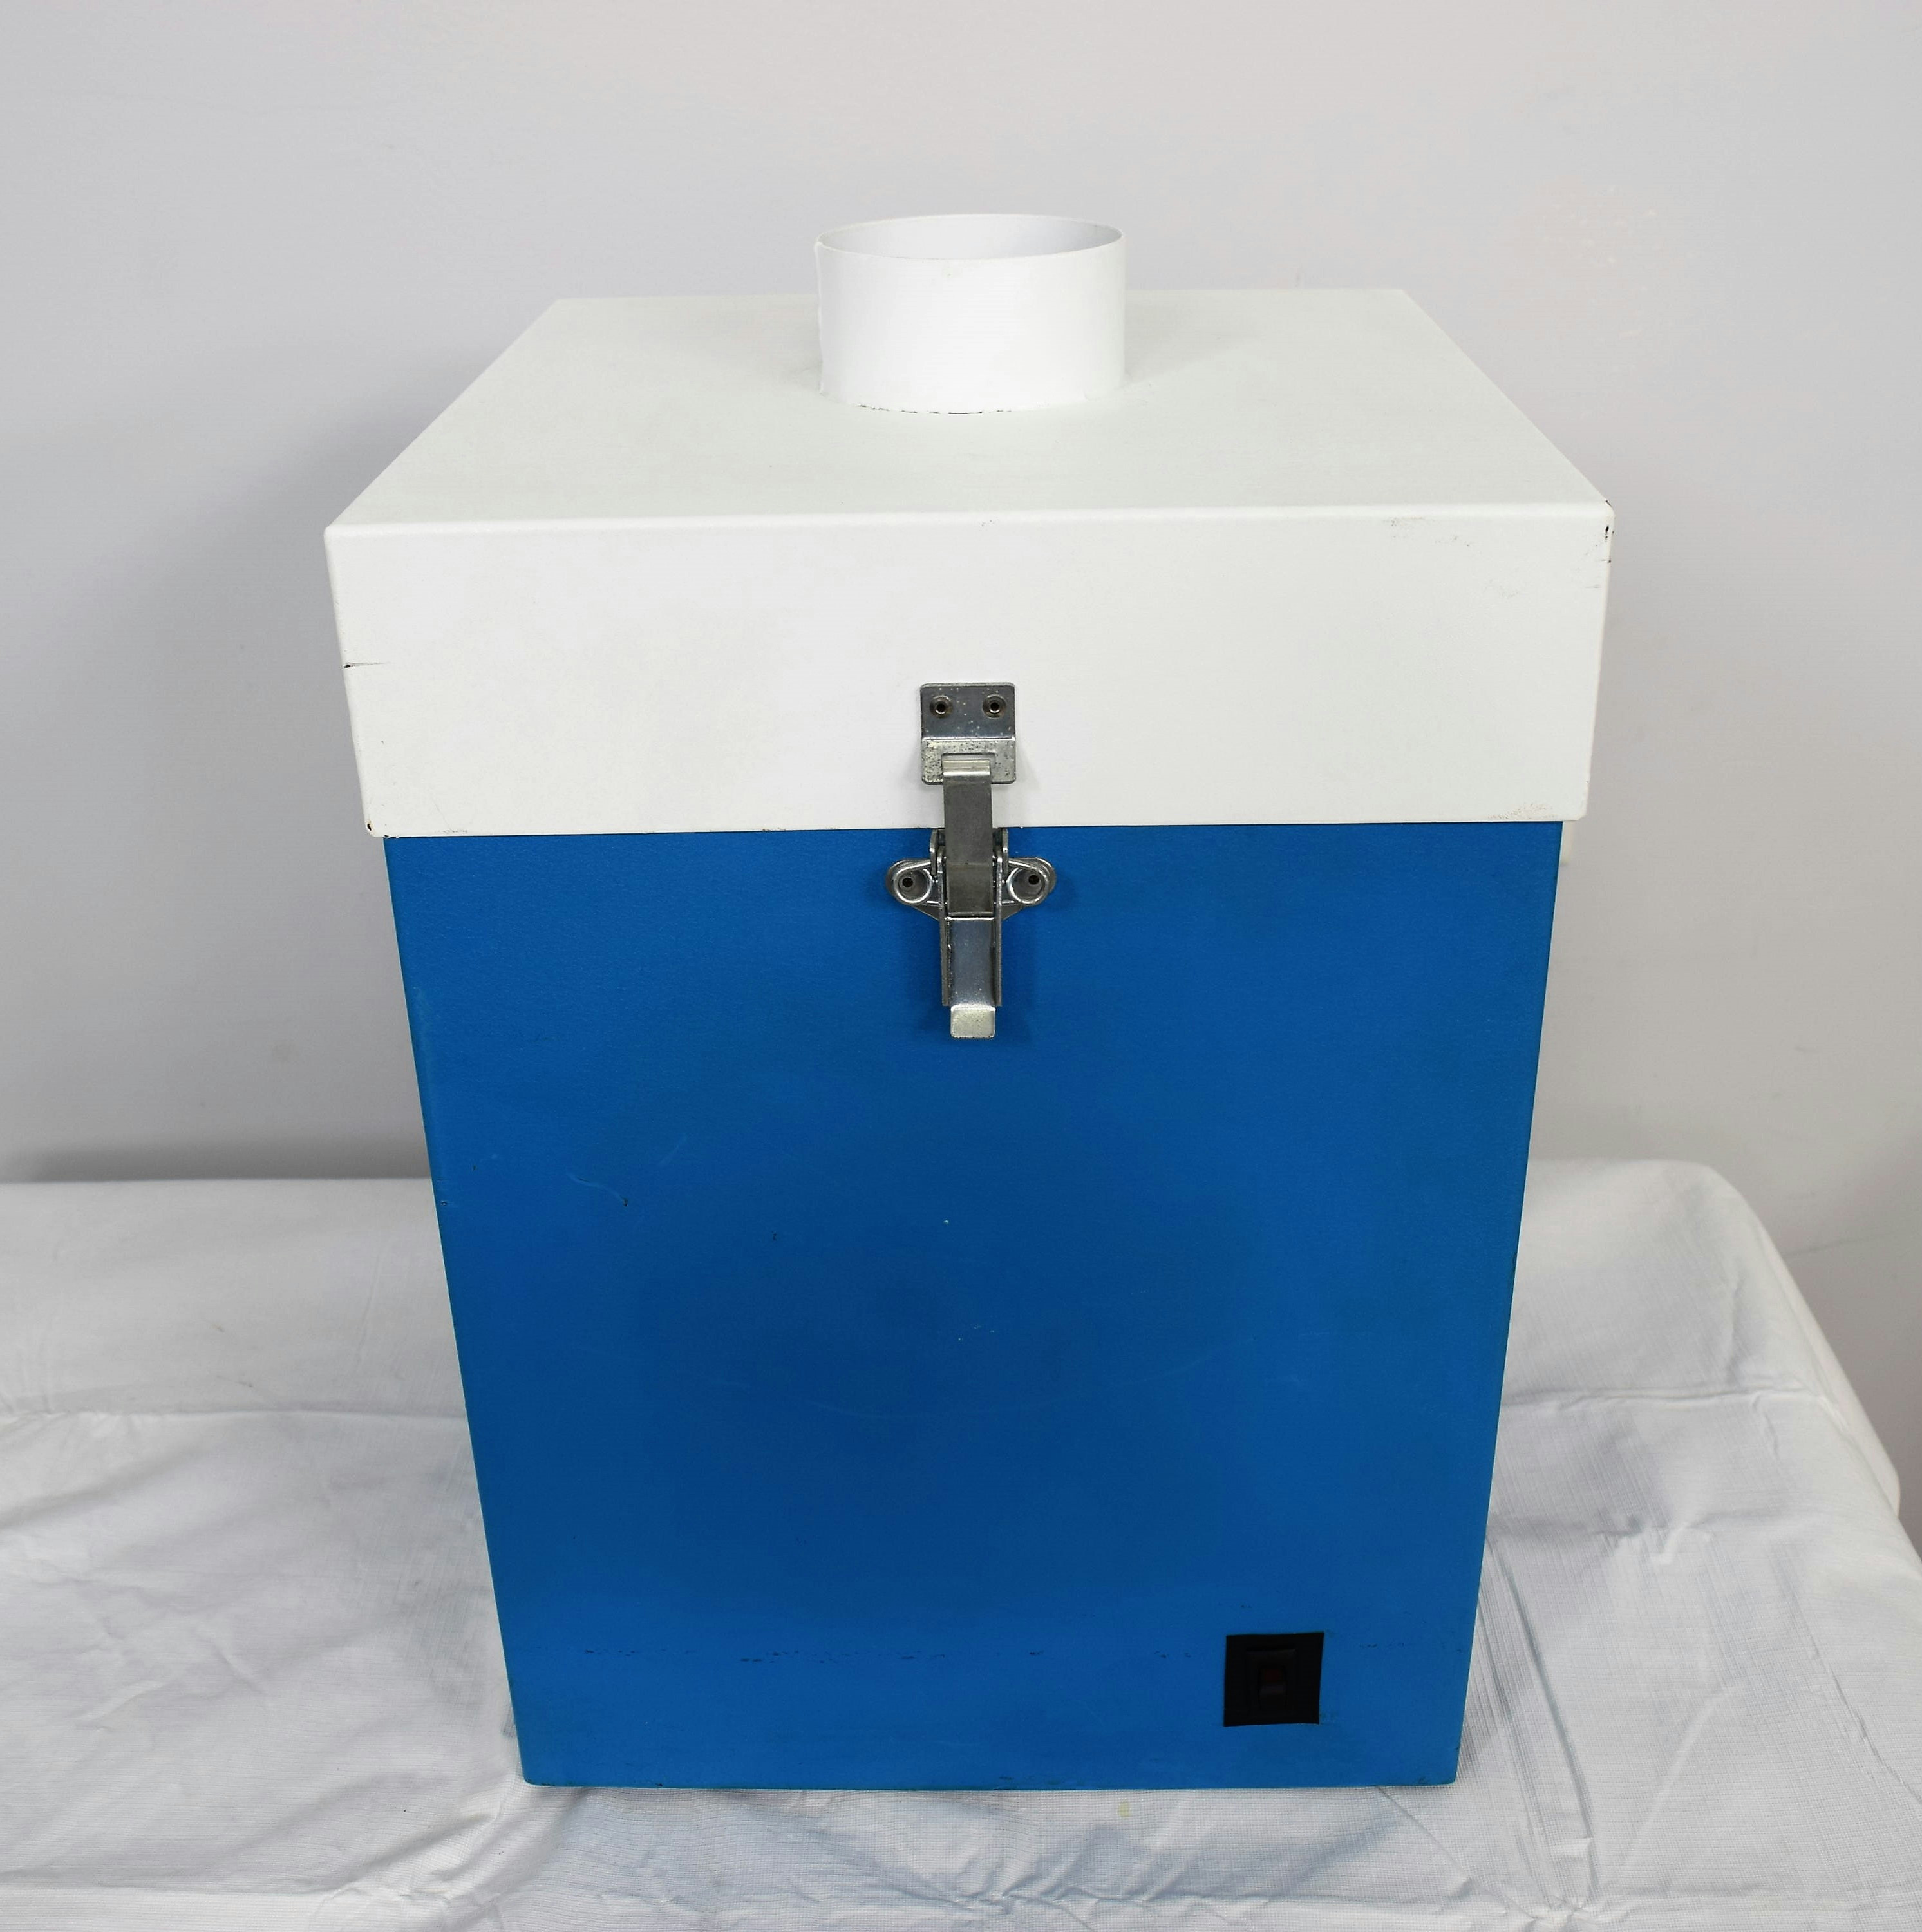 Image of Flow-Sciences-FS4000 by New Life Scientific Inc.